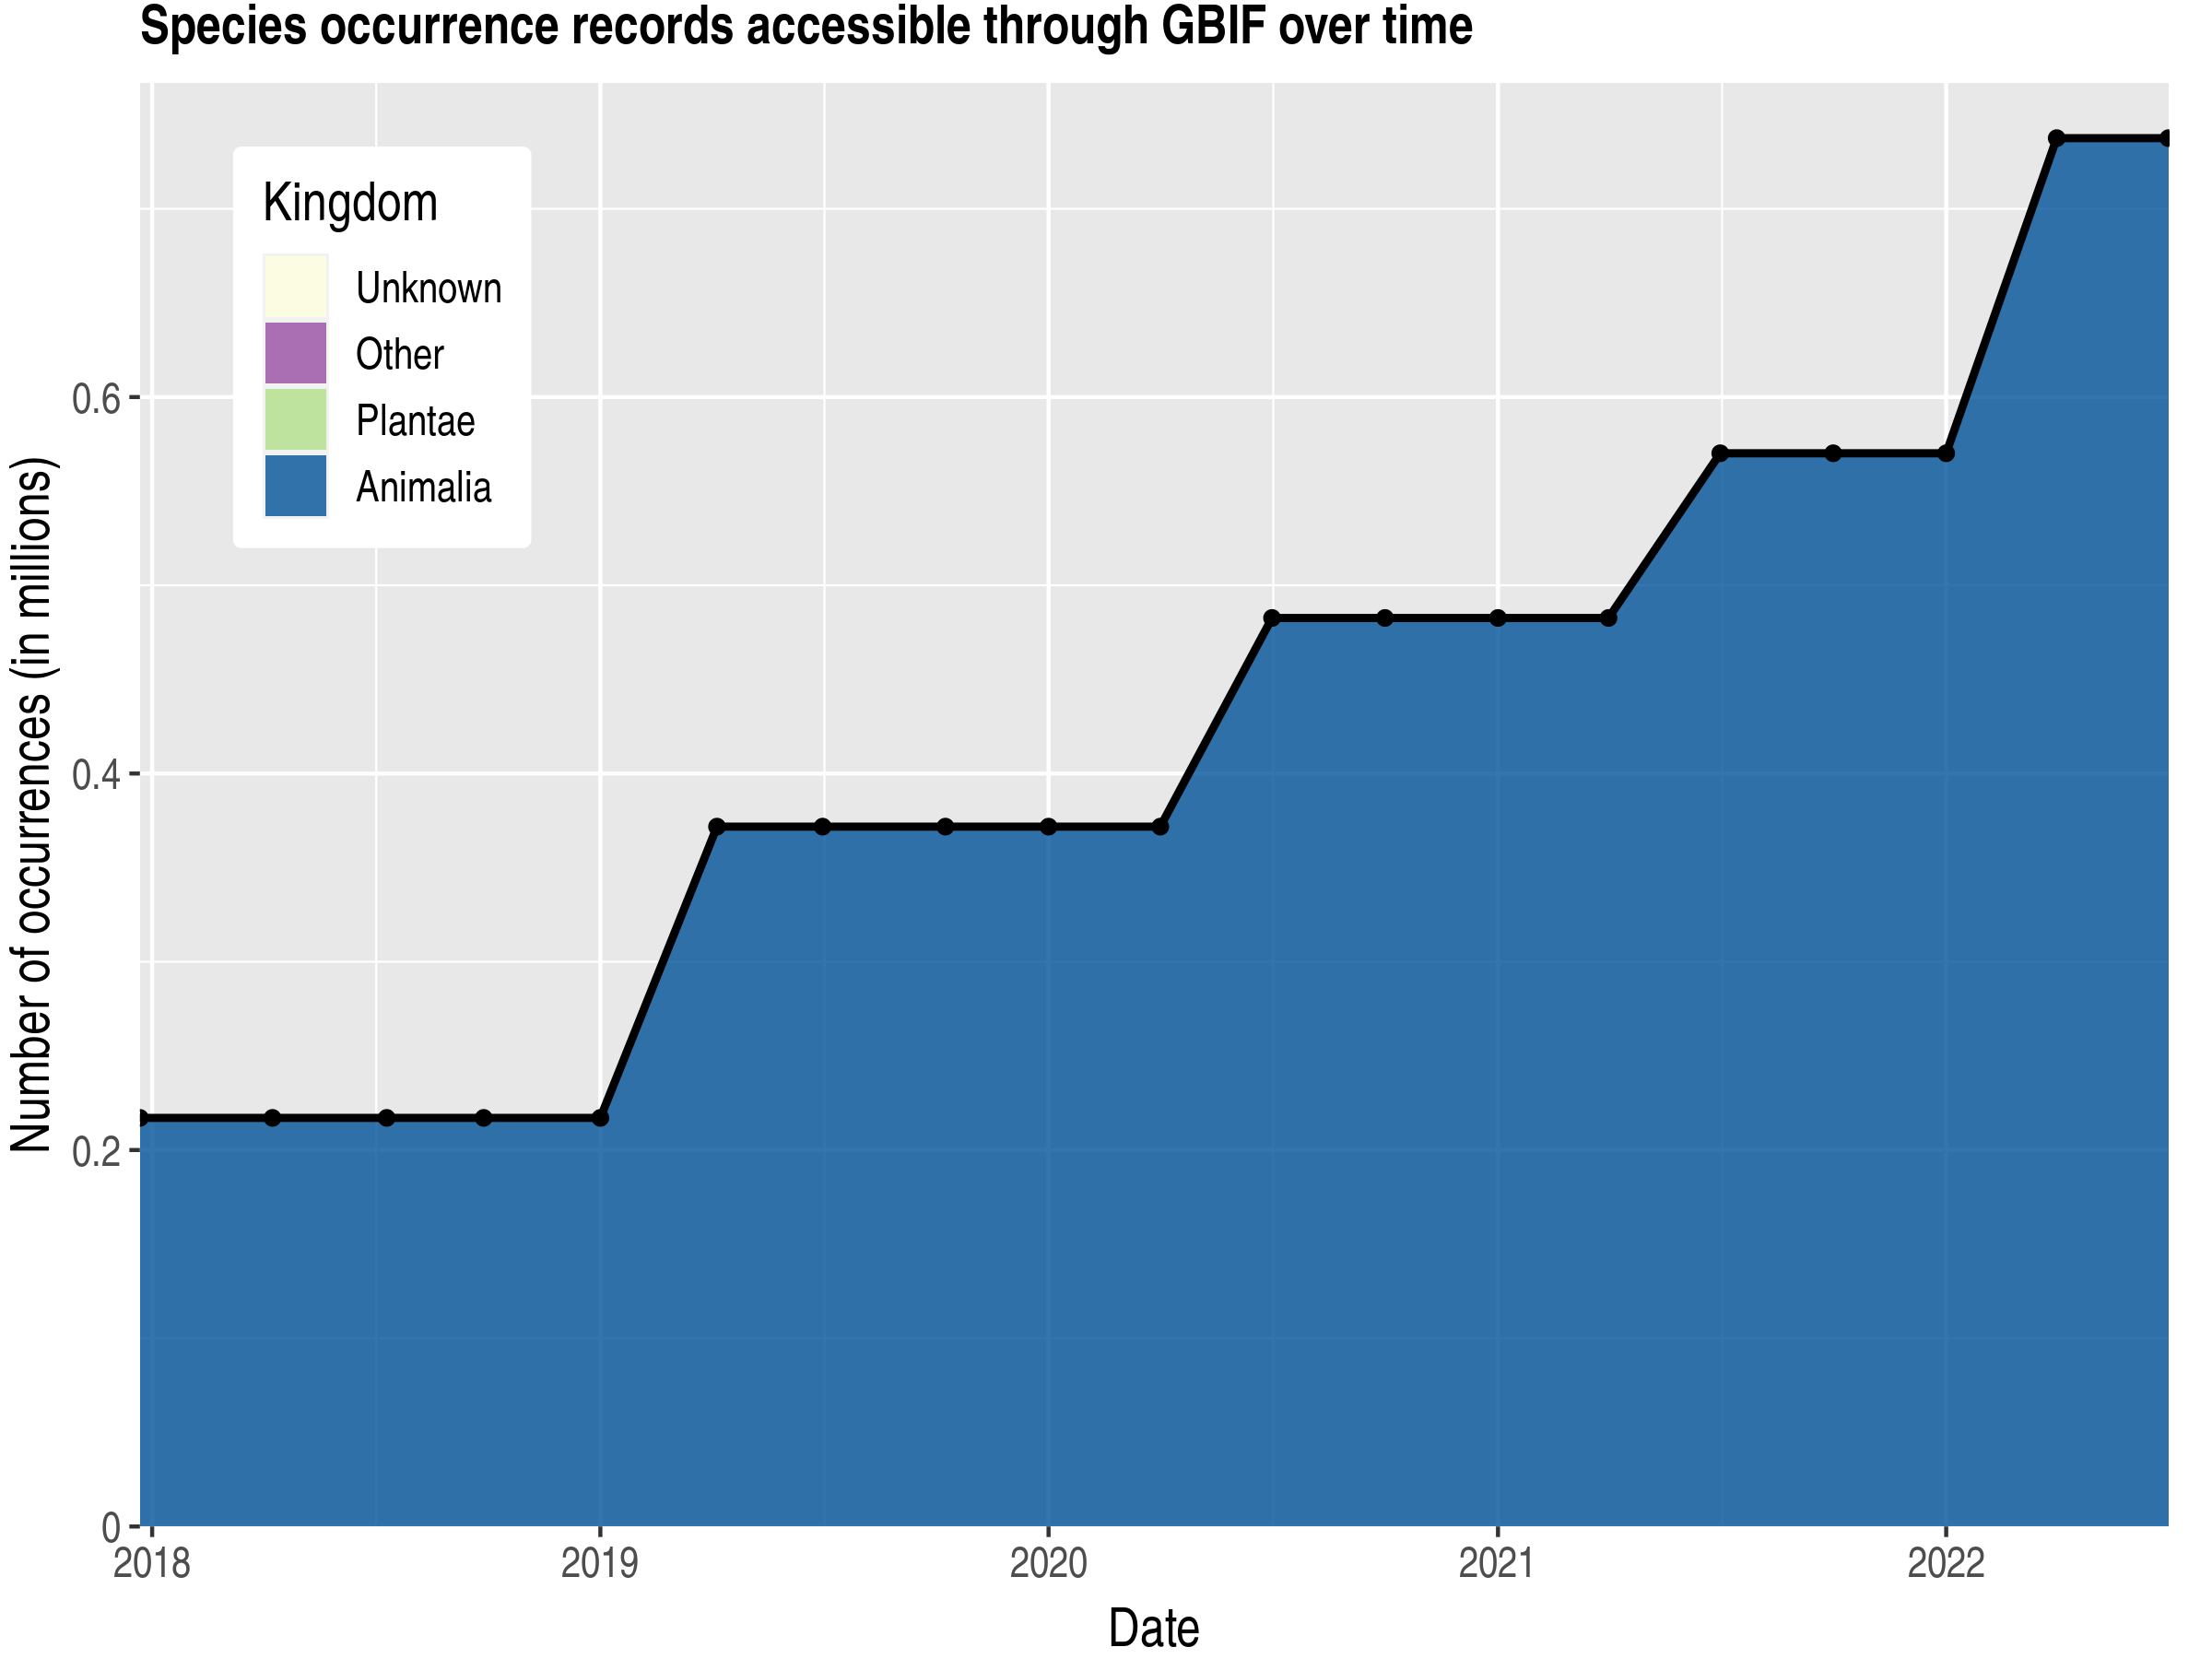 Data trend of records by kingdom published by El Salvador